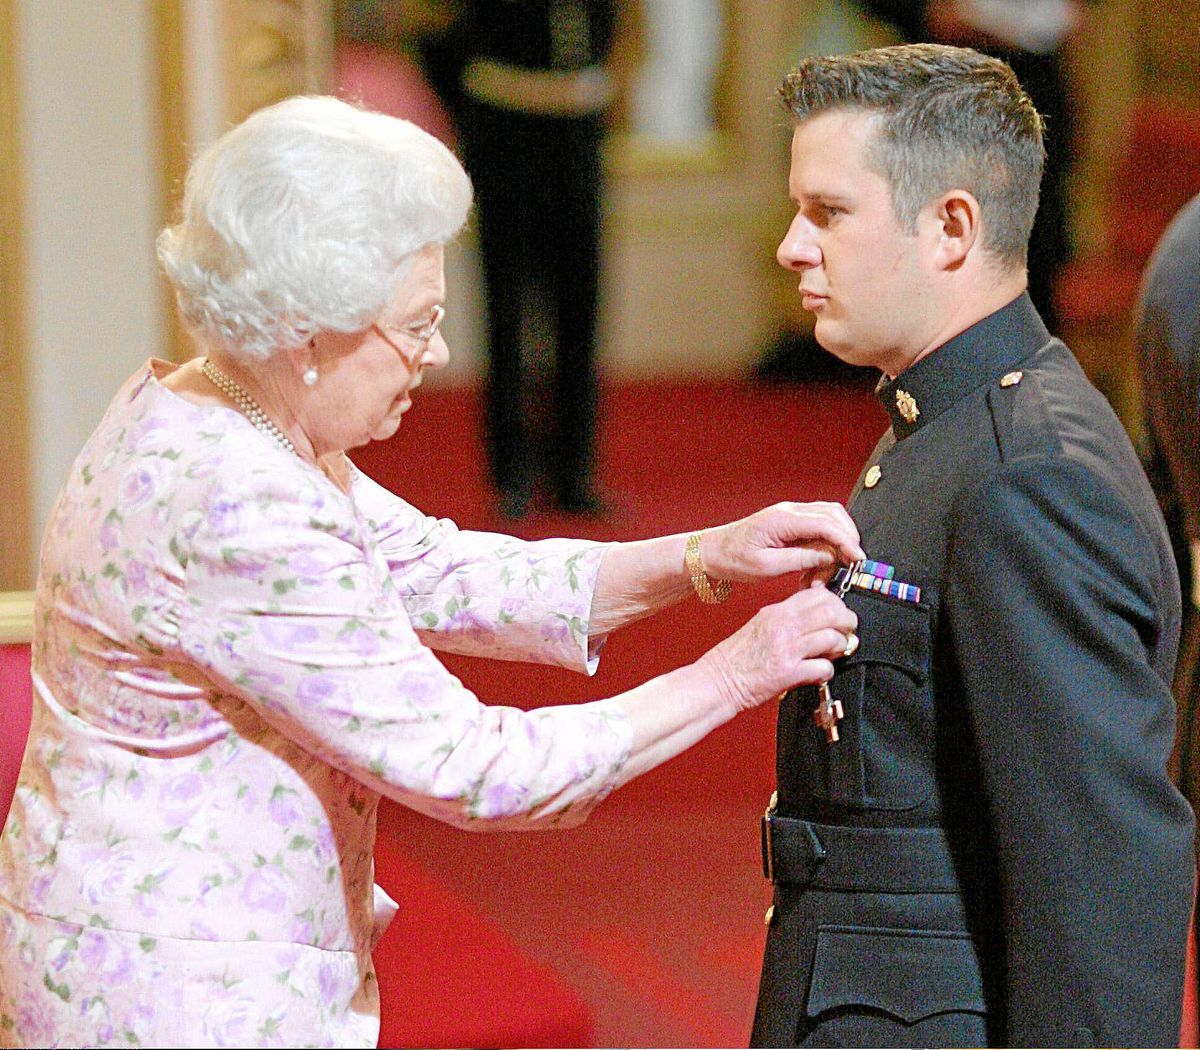 A proud moment as Kim Hughes is decorated with the George Cross by The Queen at Buckingham Palace on June 9, 2010.